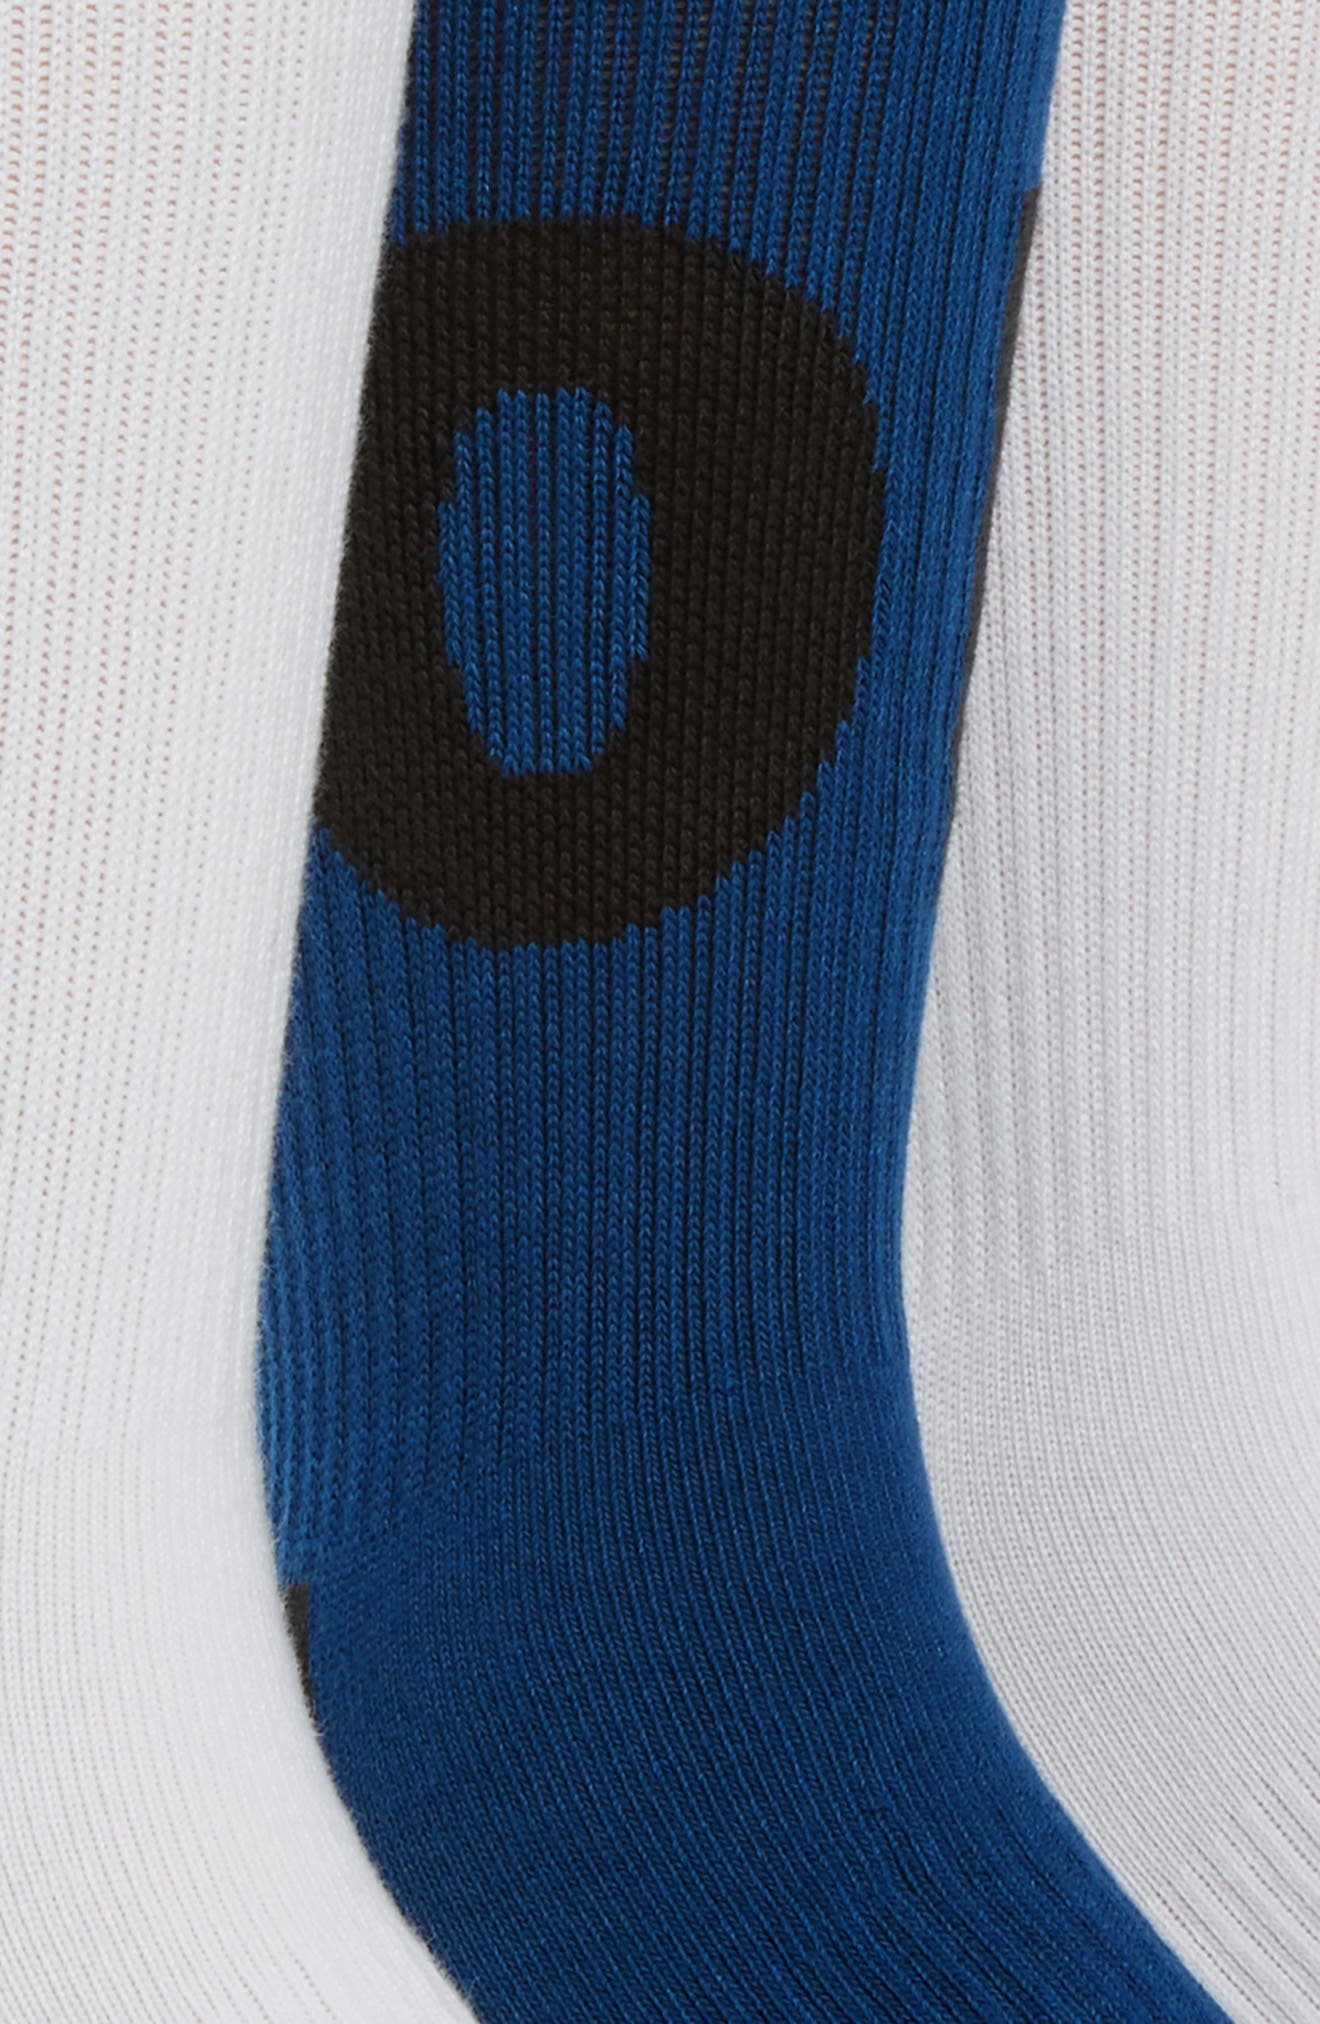 HBR 2-Pack Socks,                             Alternate thumbnail 5, color,